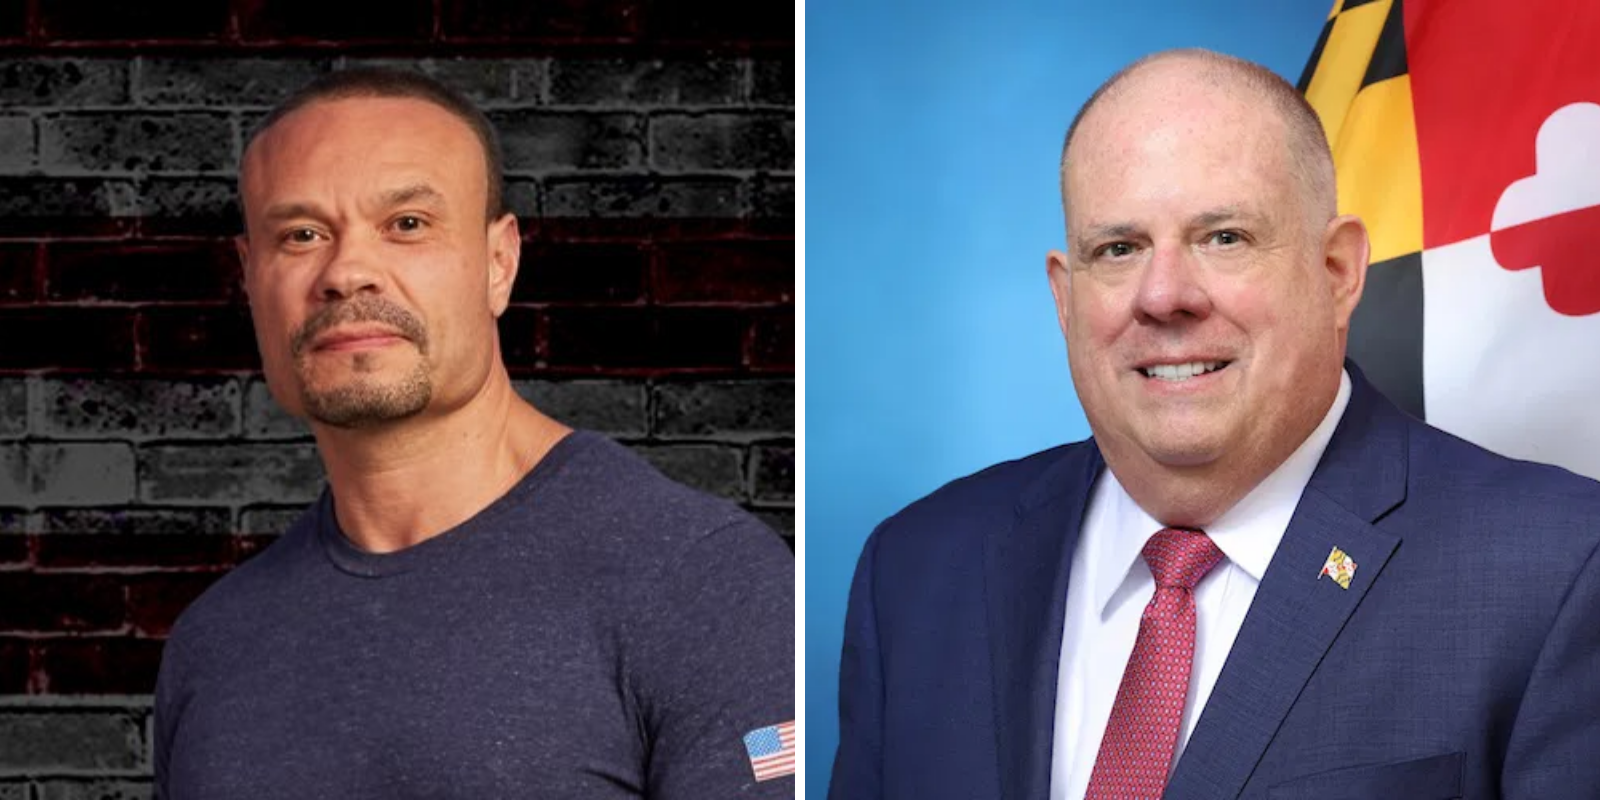 Dan Bongino calls Maryland Gov 'pathetic loser' after he calls for Trump to concede